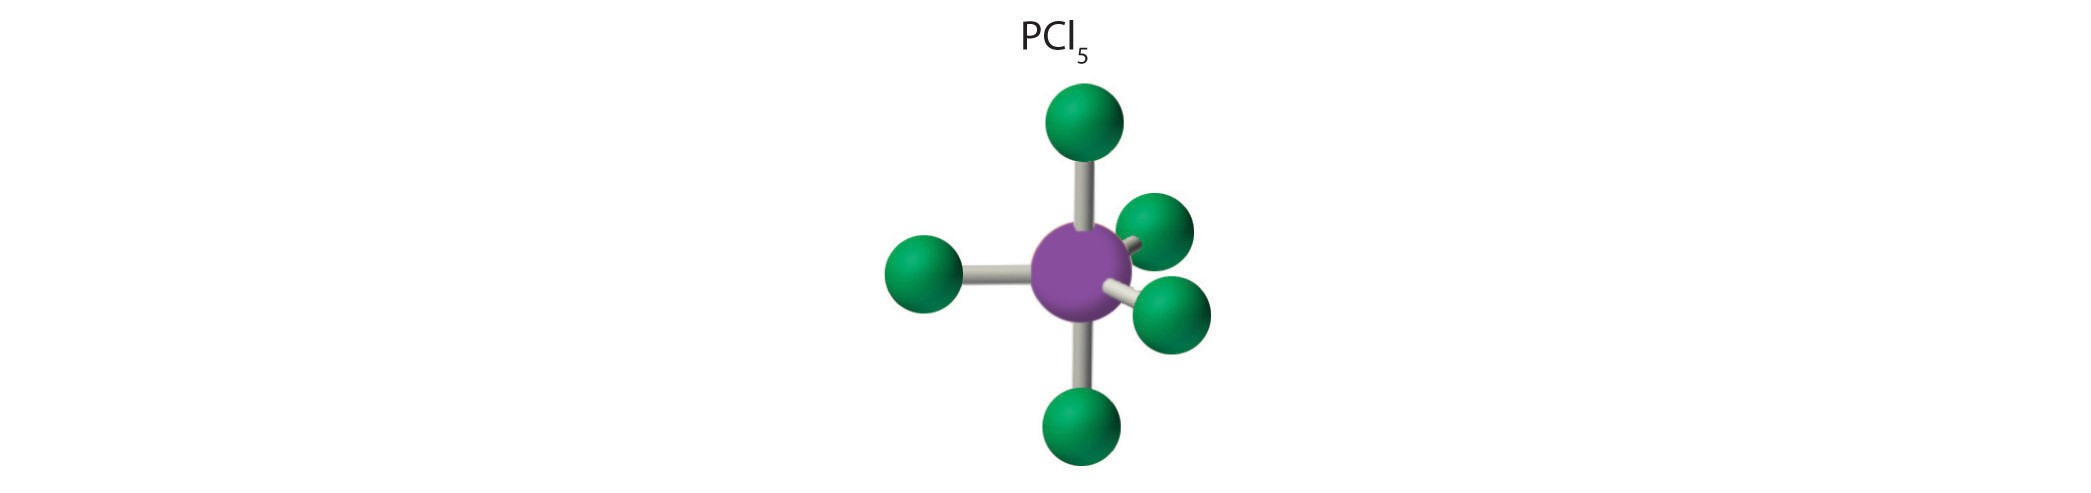 Mcquestions317b also 7565881 also S13 01 Predicting The Geometry Of Mol as well Given Cyclohexane Chair Conformation Substitute Two H Labels Br Construct Stable Isomer Co Q3092212 as well 10 Lecture. on axial and equatorial positions